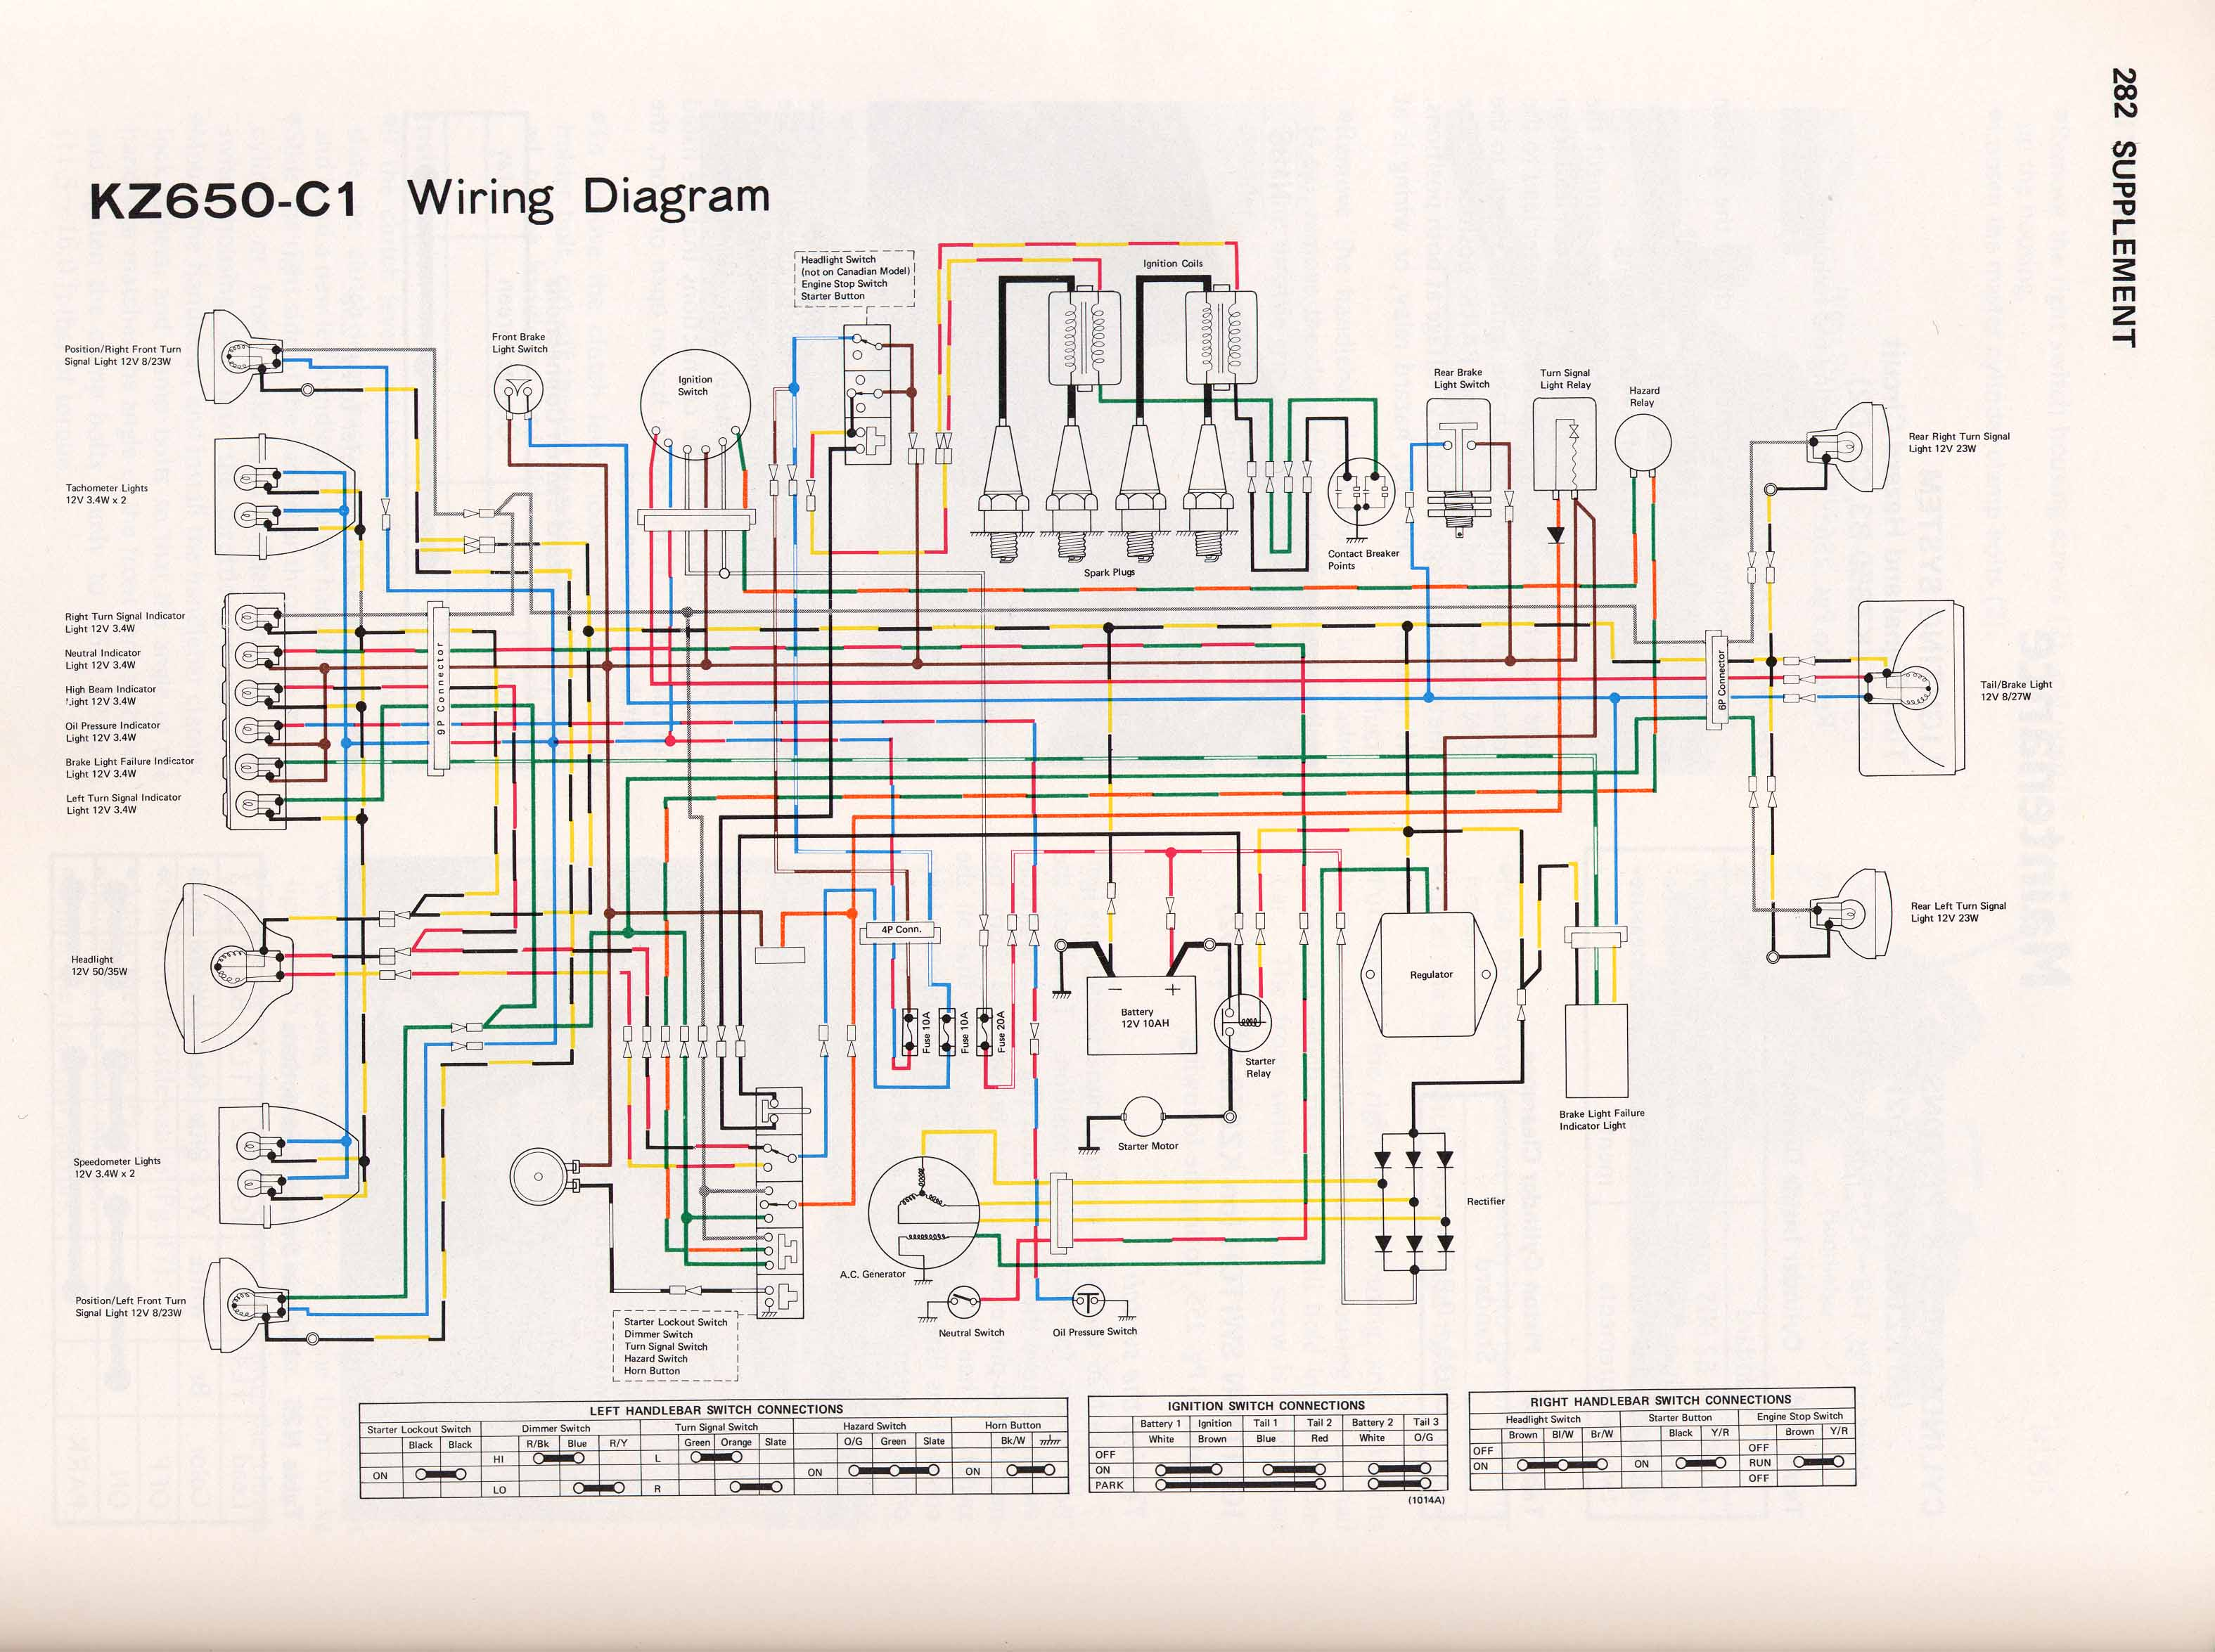 1982 Kawasaki 750 Wiring Diagram Data Yamaha Kz650 Info Diagrams Kz1000p